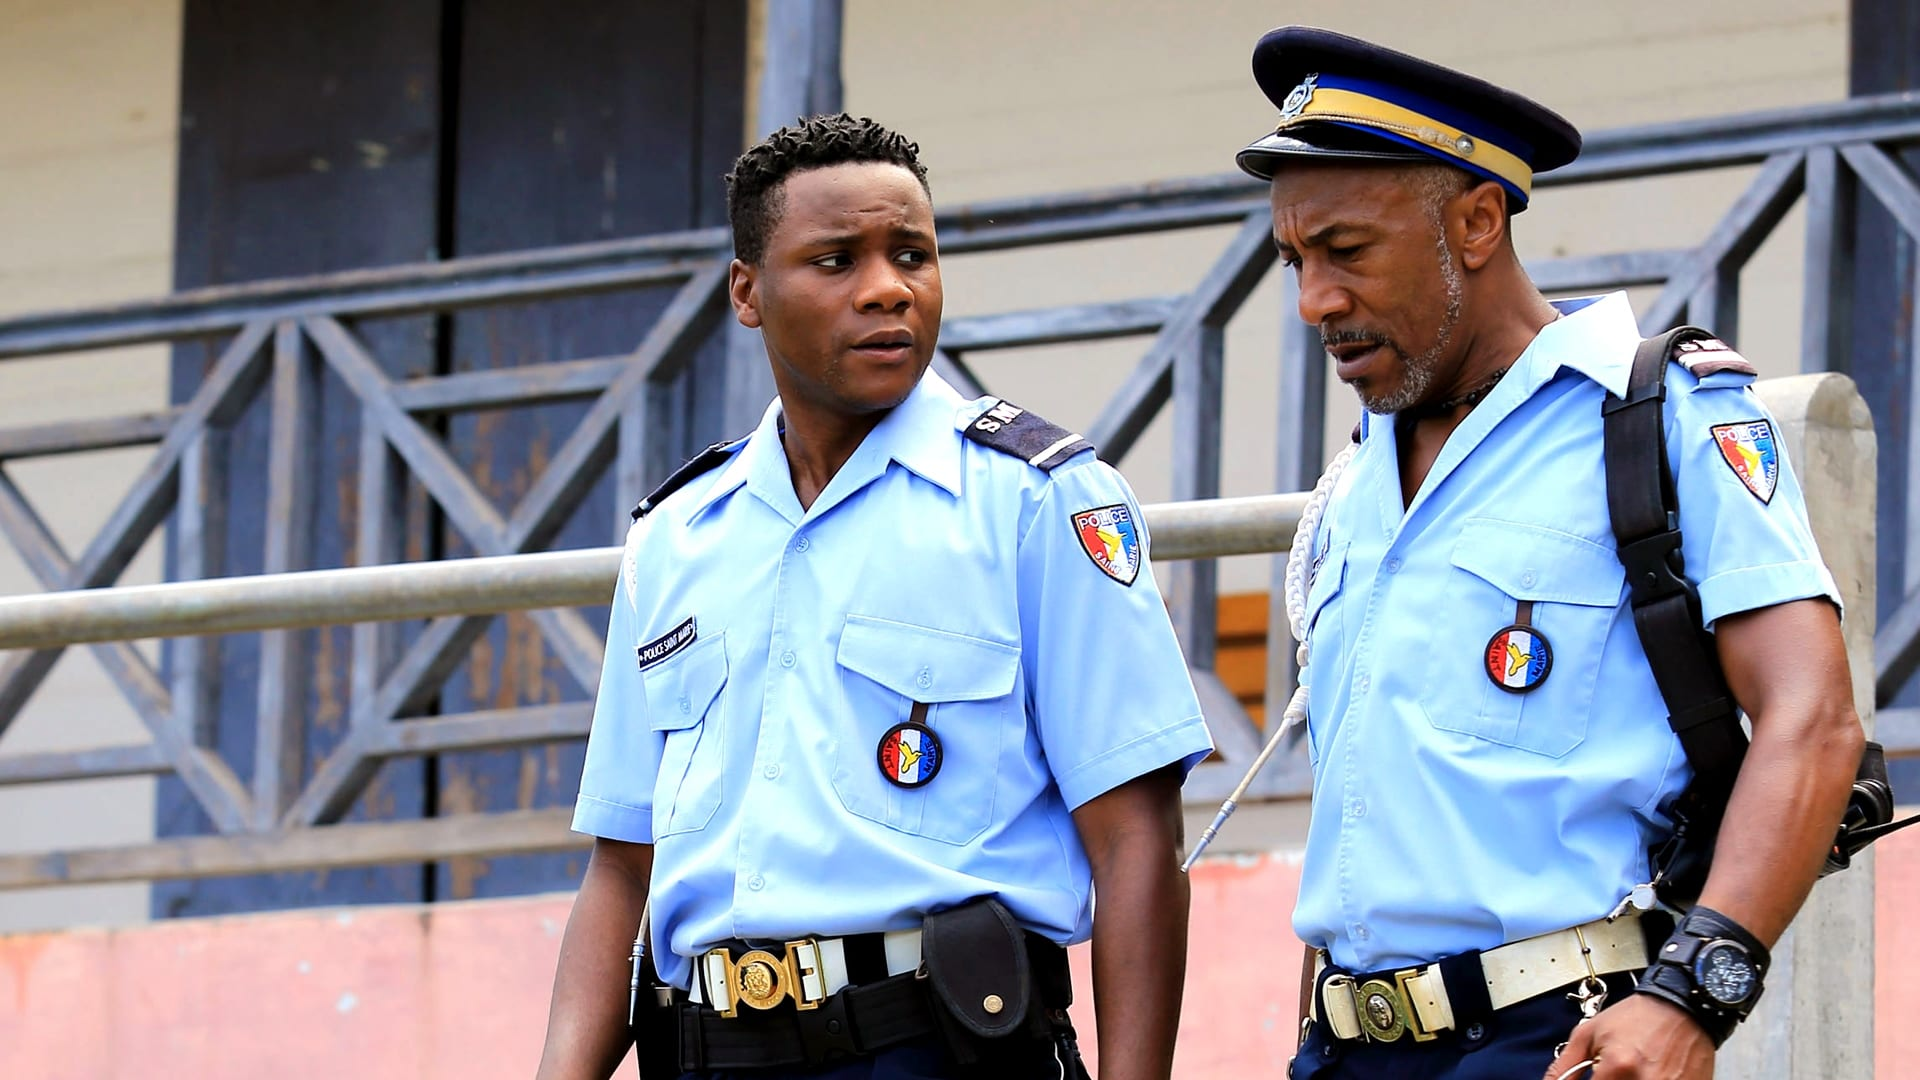 Death in Paradise - Season 6 Episode 3 : The Impossible Murder